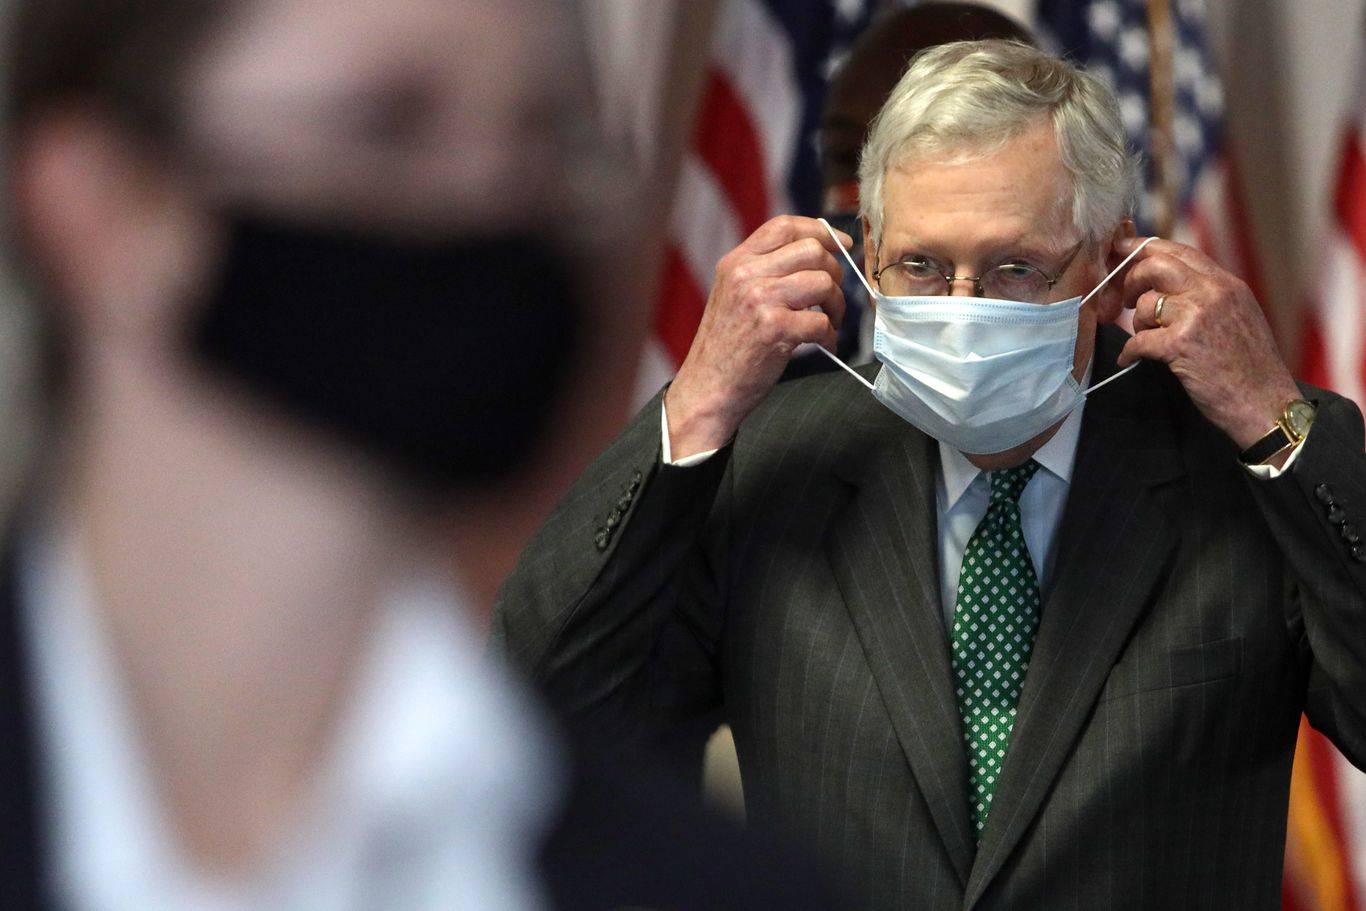 Inside Mitch McConnell's phase four coronavirus relief proposal thumbnail